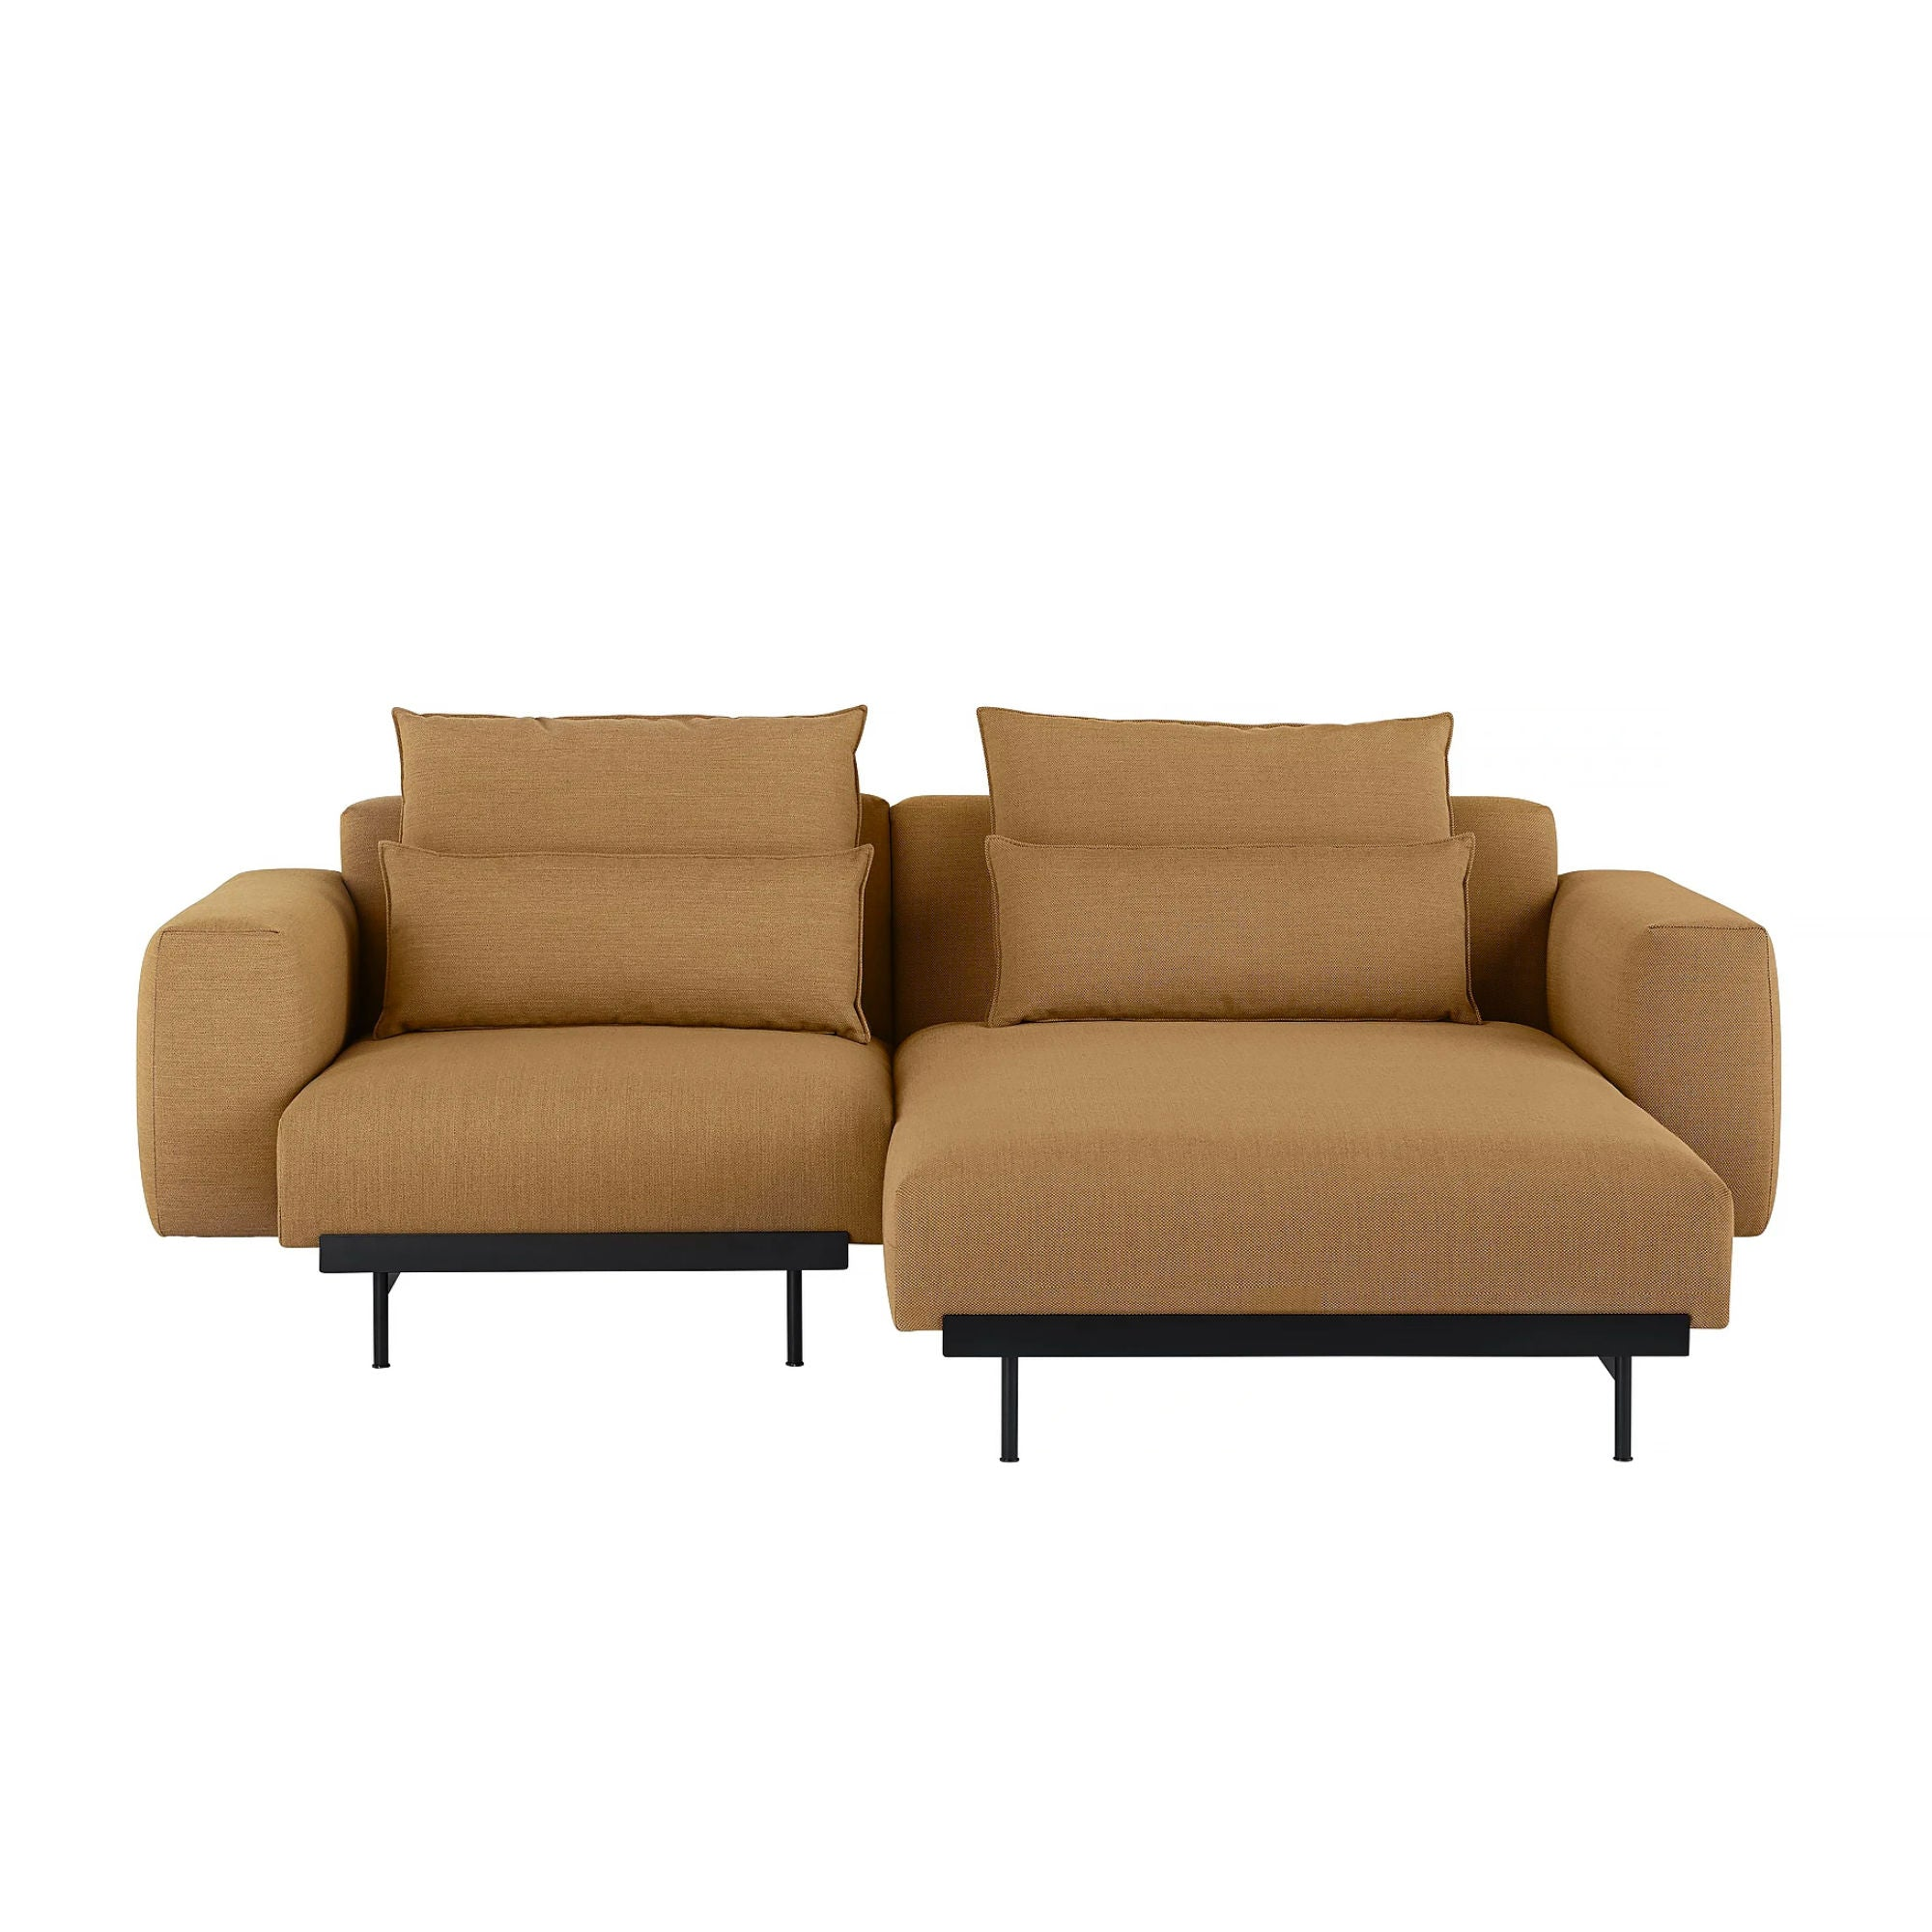 Muuto In Situ Modular Sofa 2-Seater Configuration 4/5 , Fiord 451